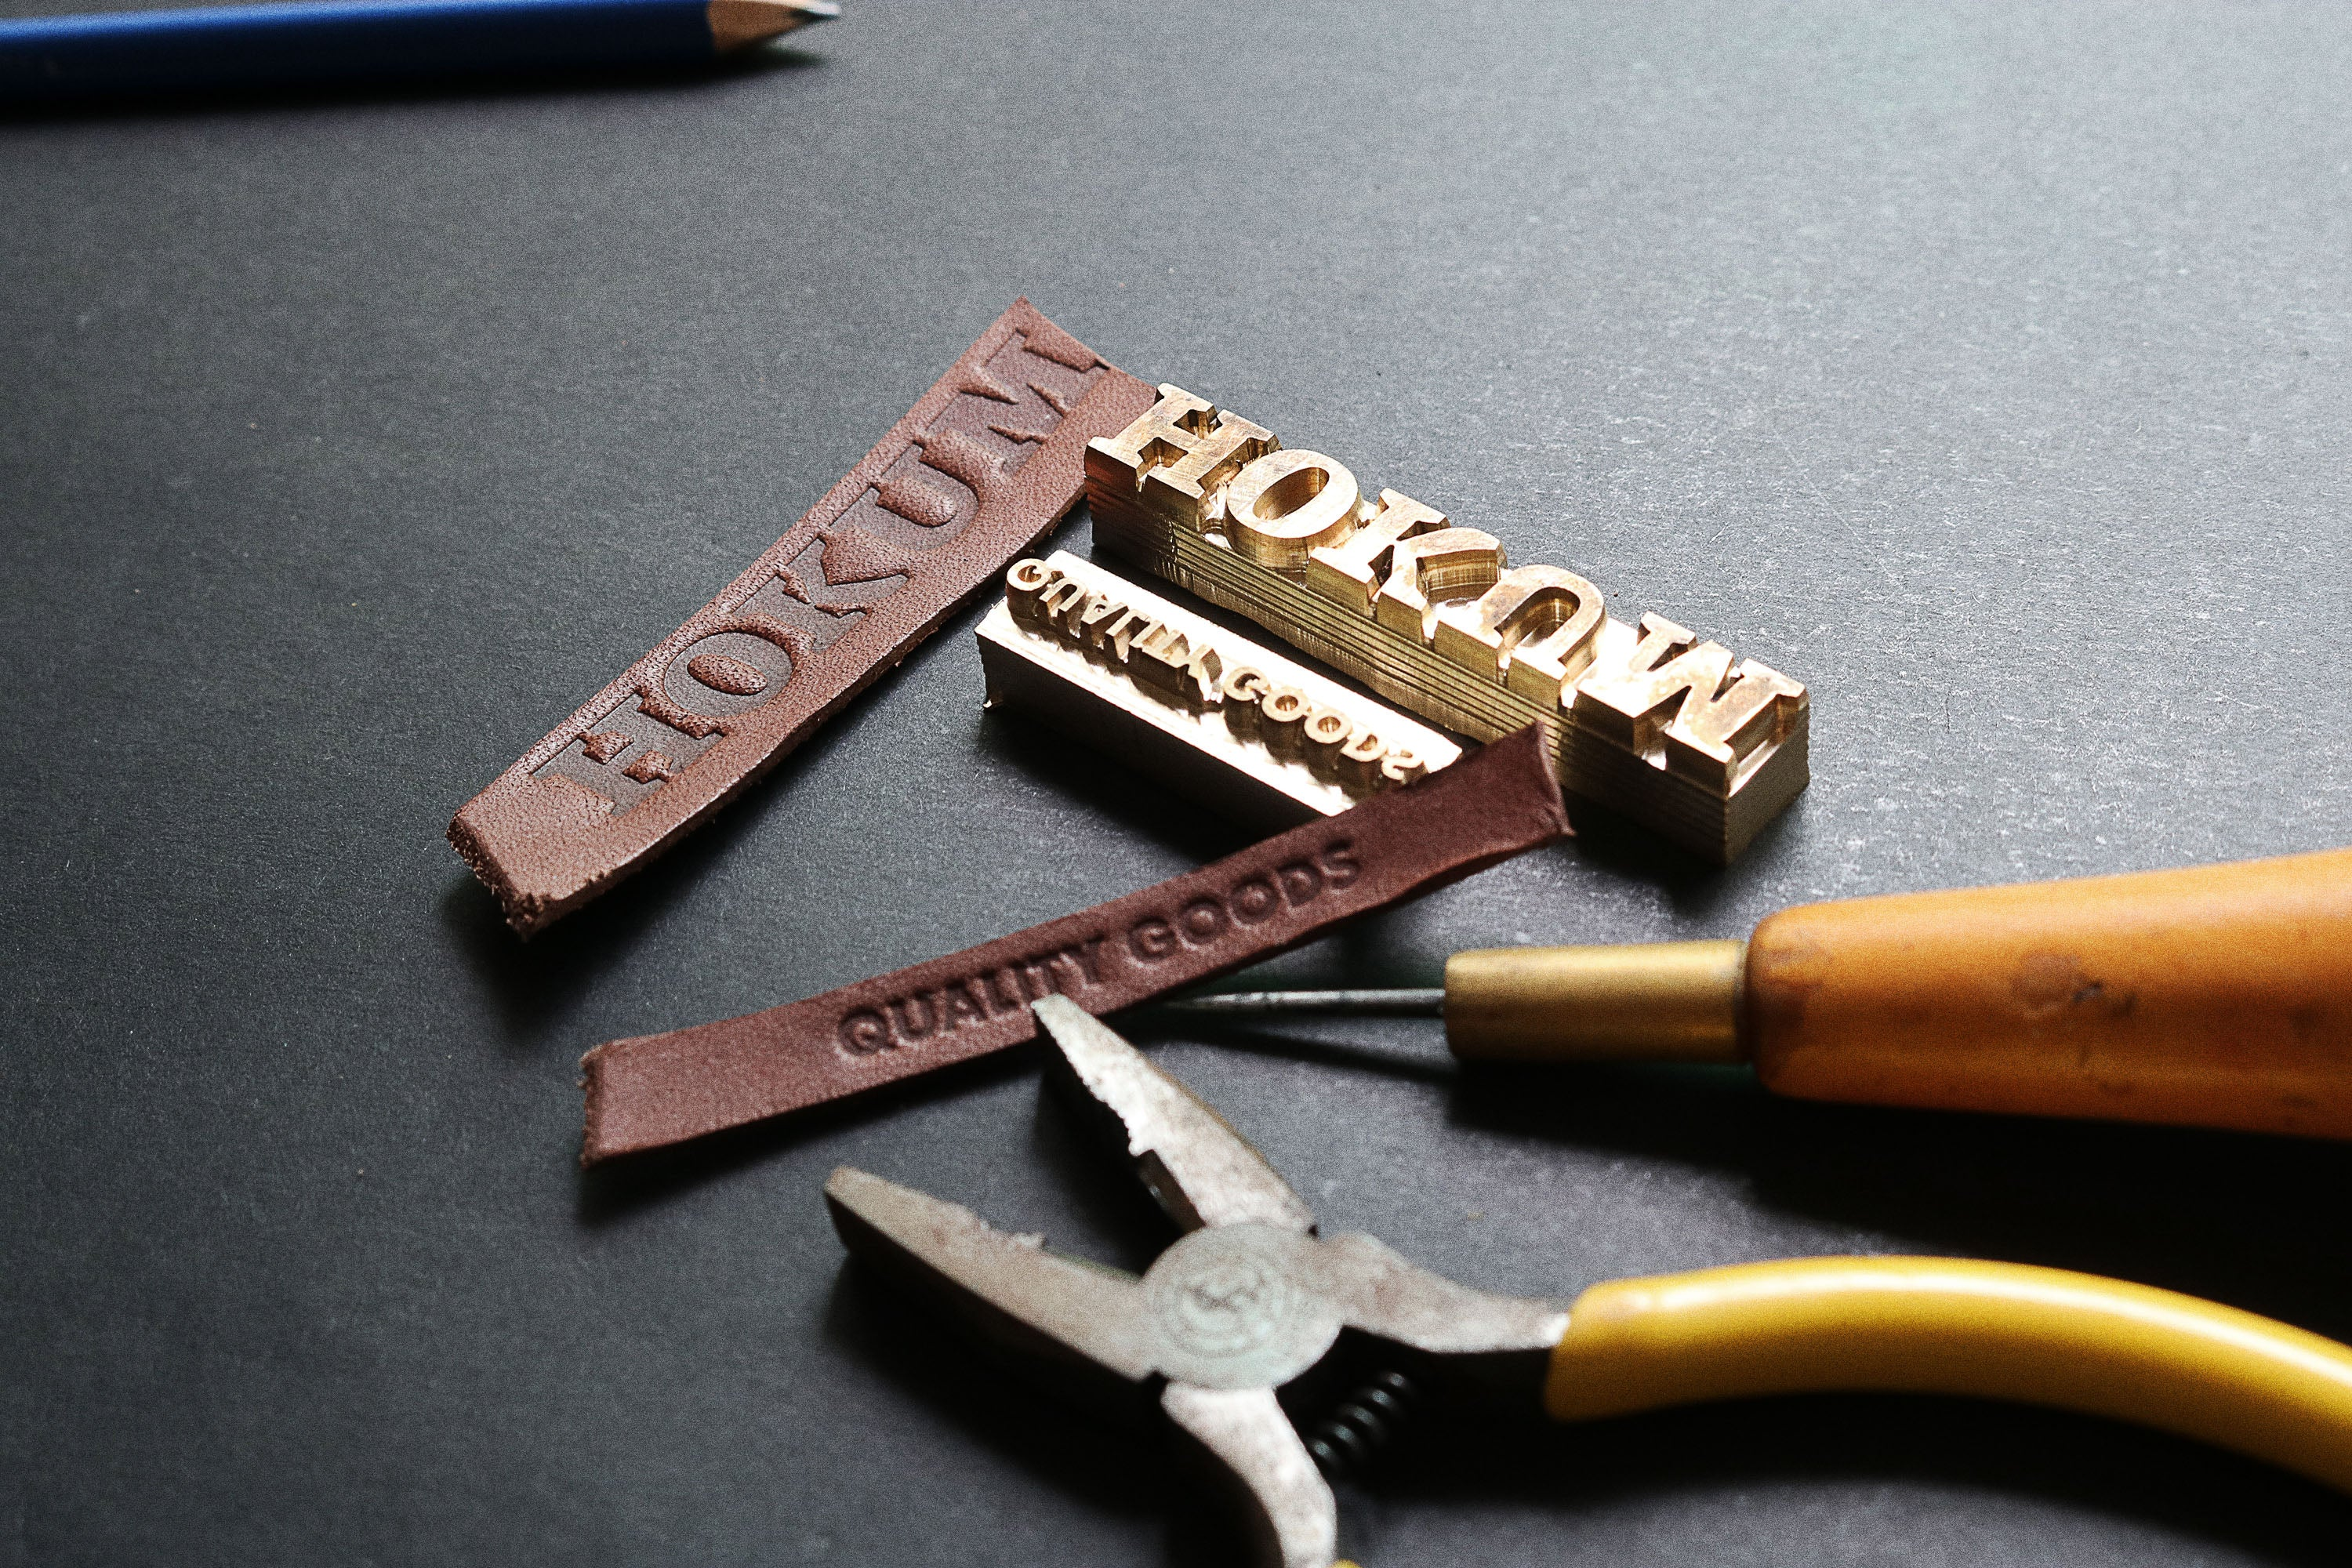 Leather stamp making, professional quality at affordable price